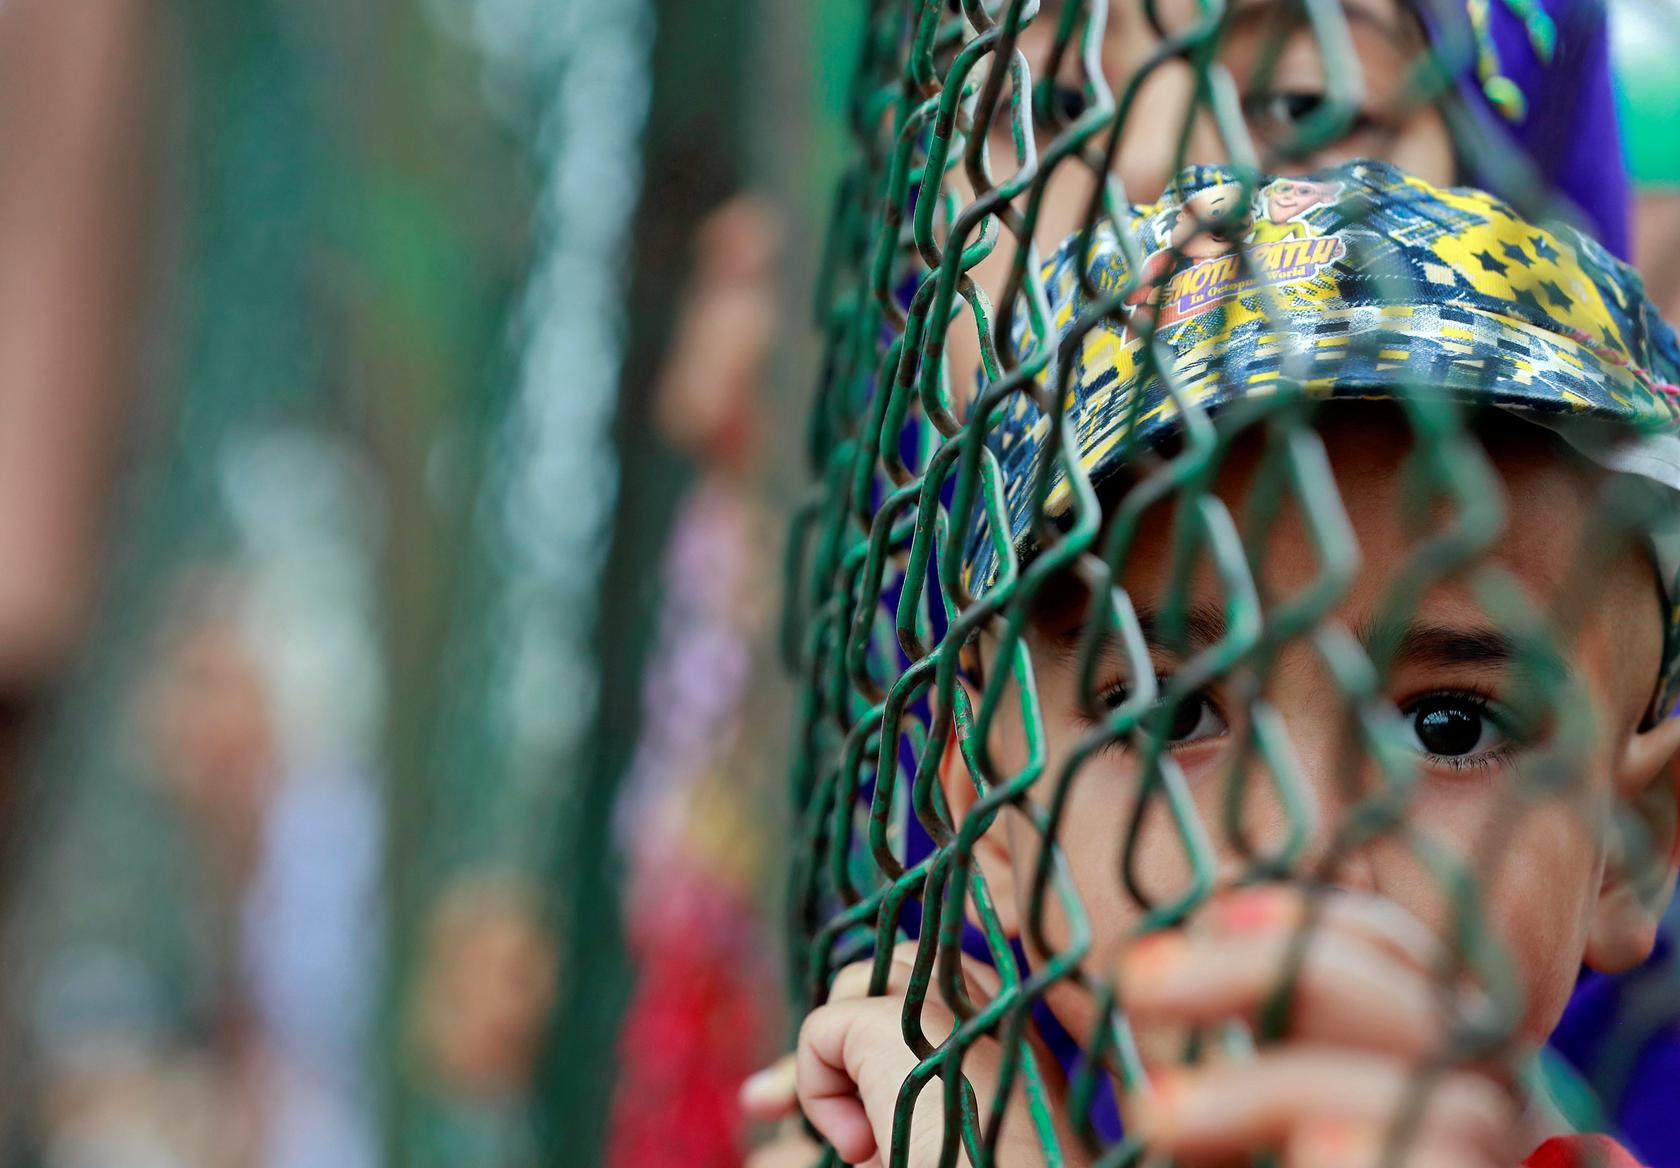 Kashmiri child looks from behind a fence at a protest site after Friday prayers during restrictions after the Indian government scrapped the special constitutional status for Kashmir, in Srinagar, August 16, 2019. REUTERS/Danish Ismail